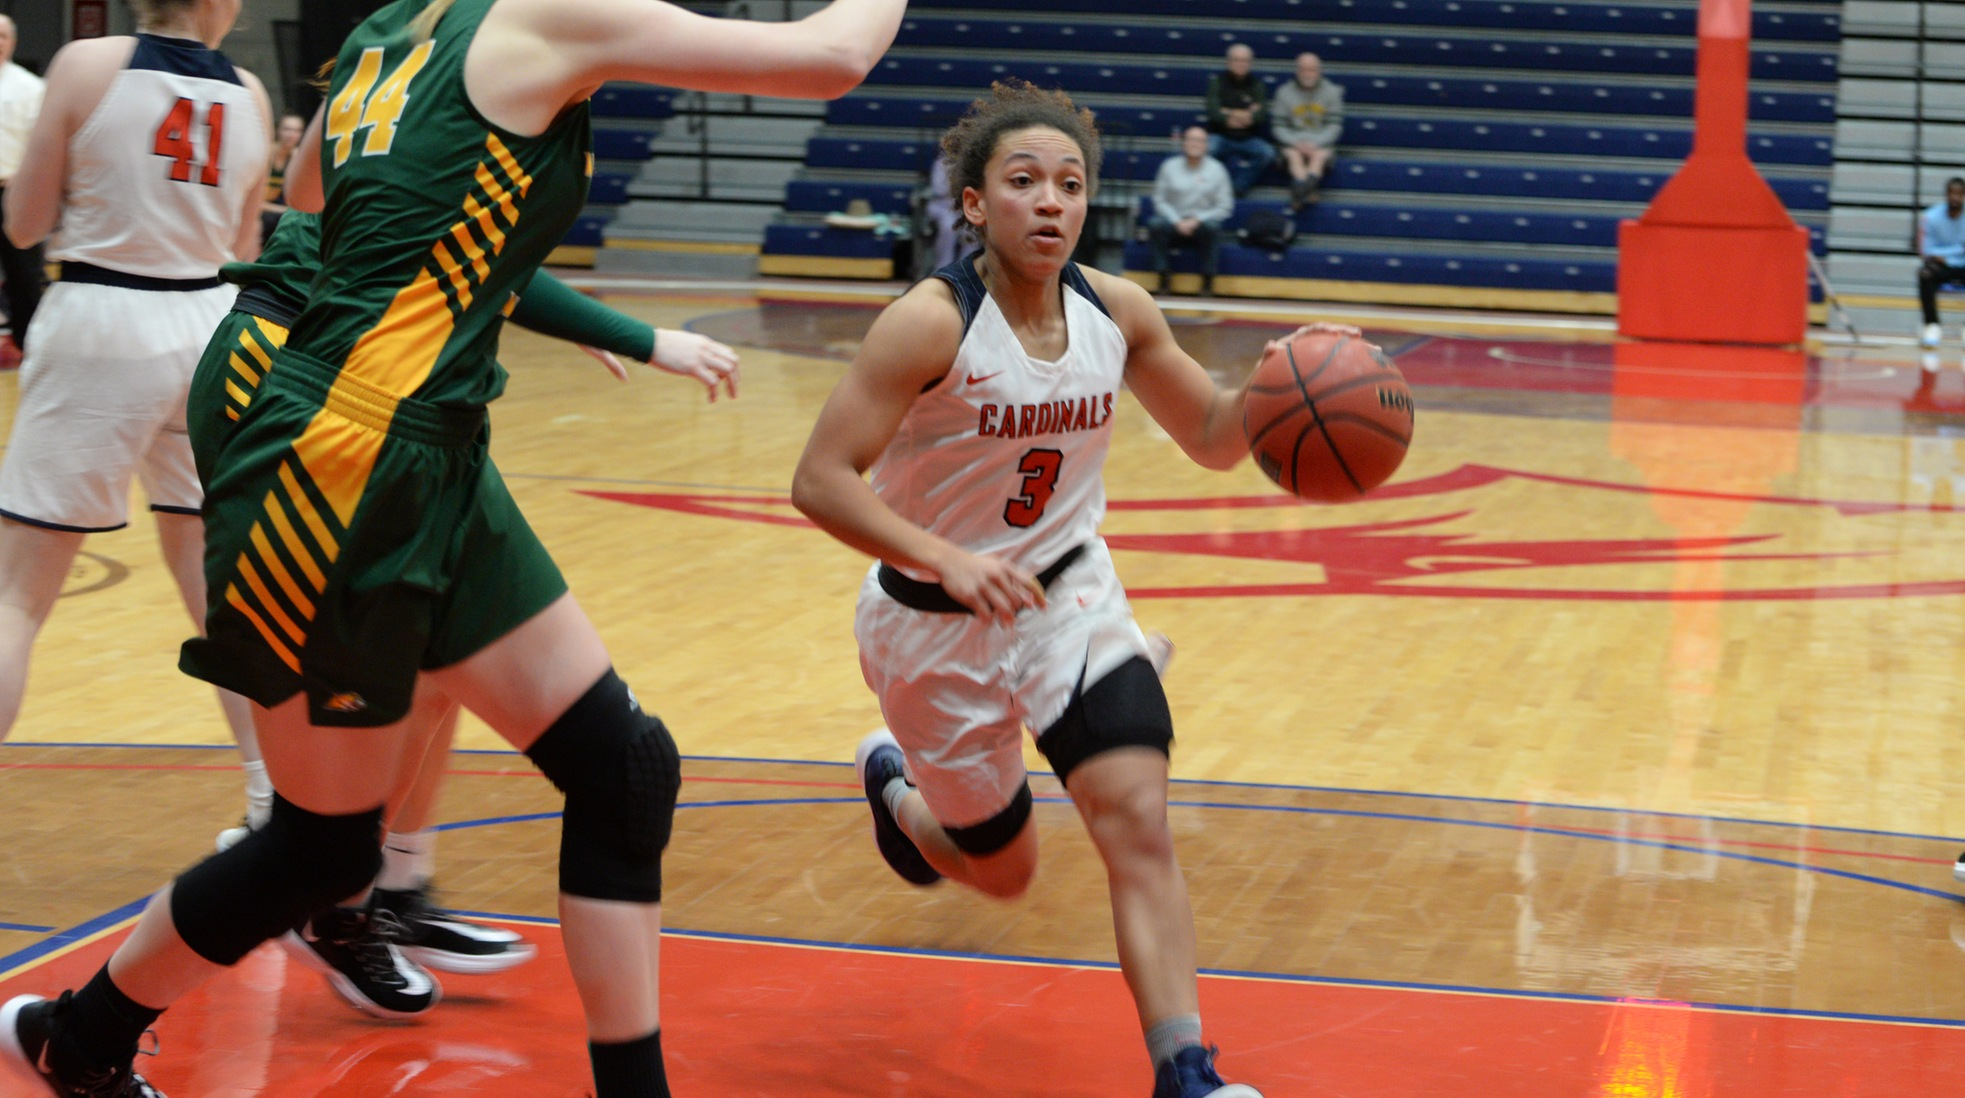 Big fourth quarter not enough as SVSU falls to NMU, 71-66